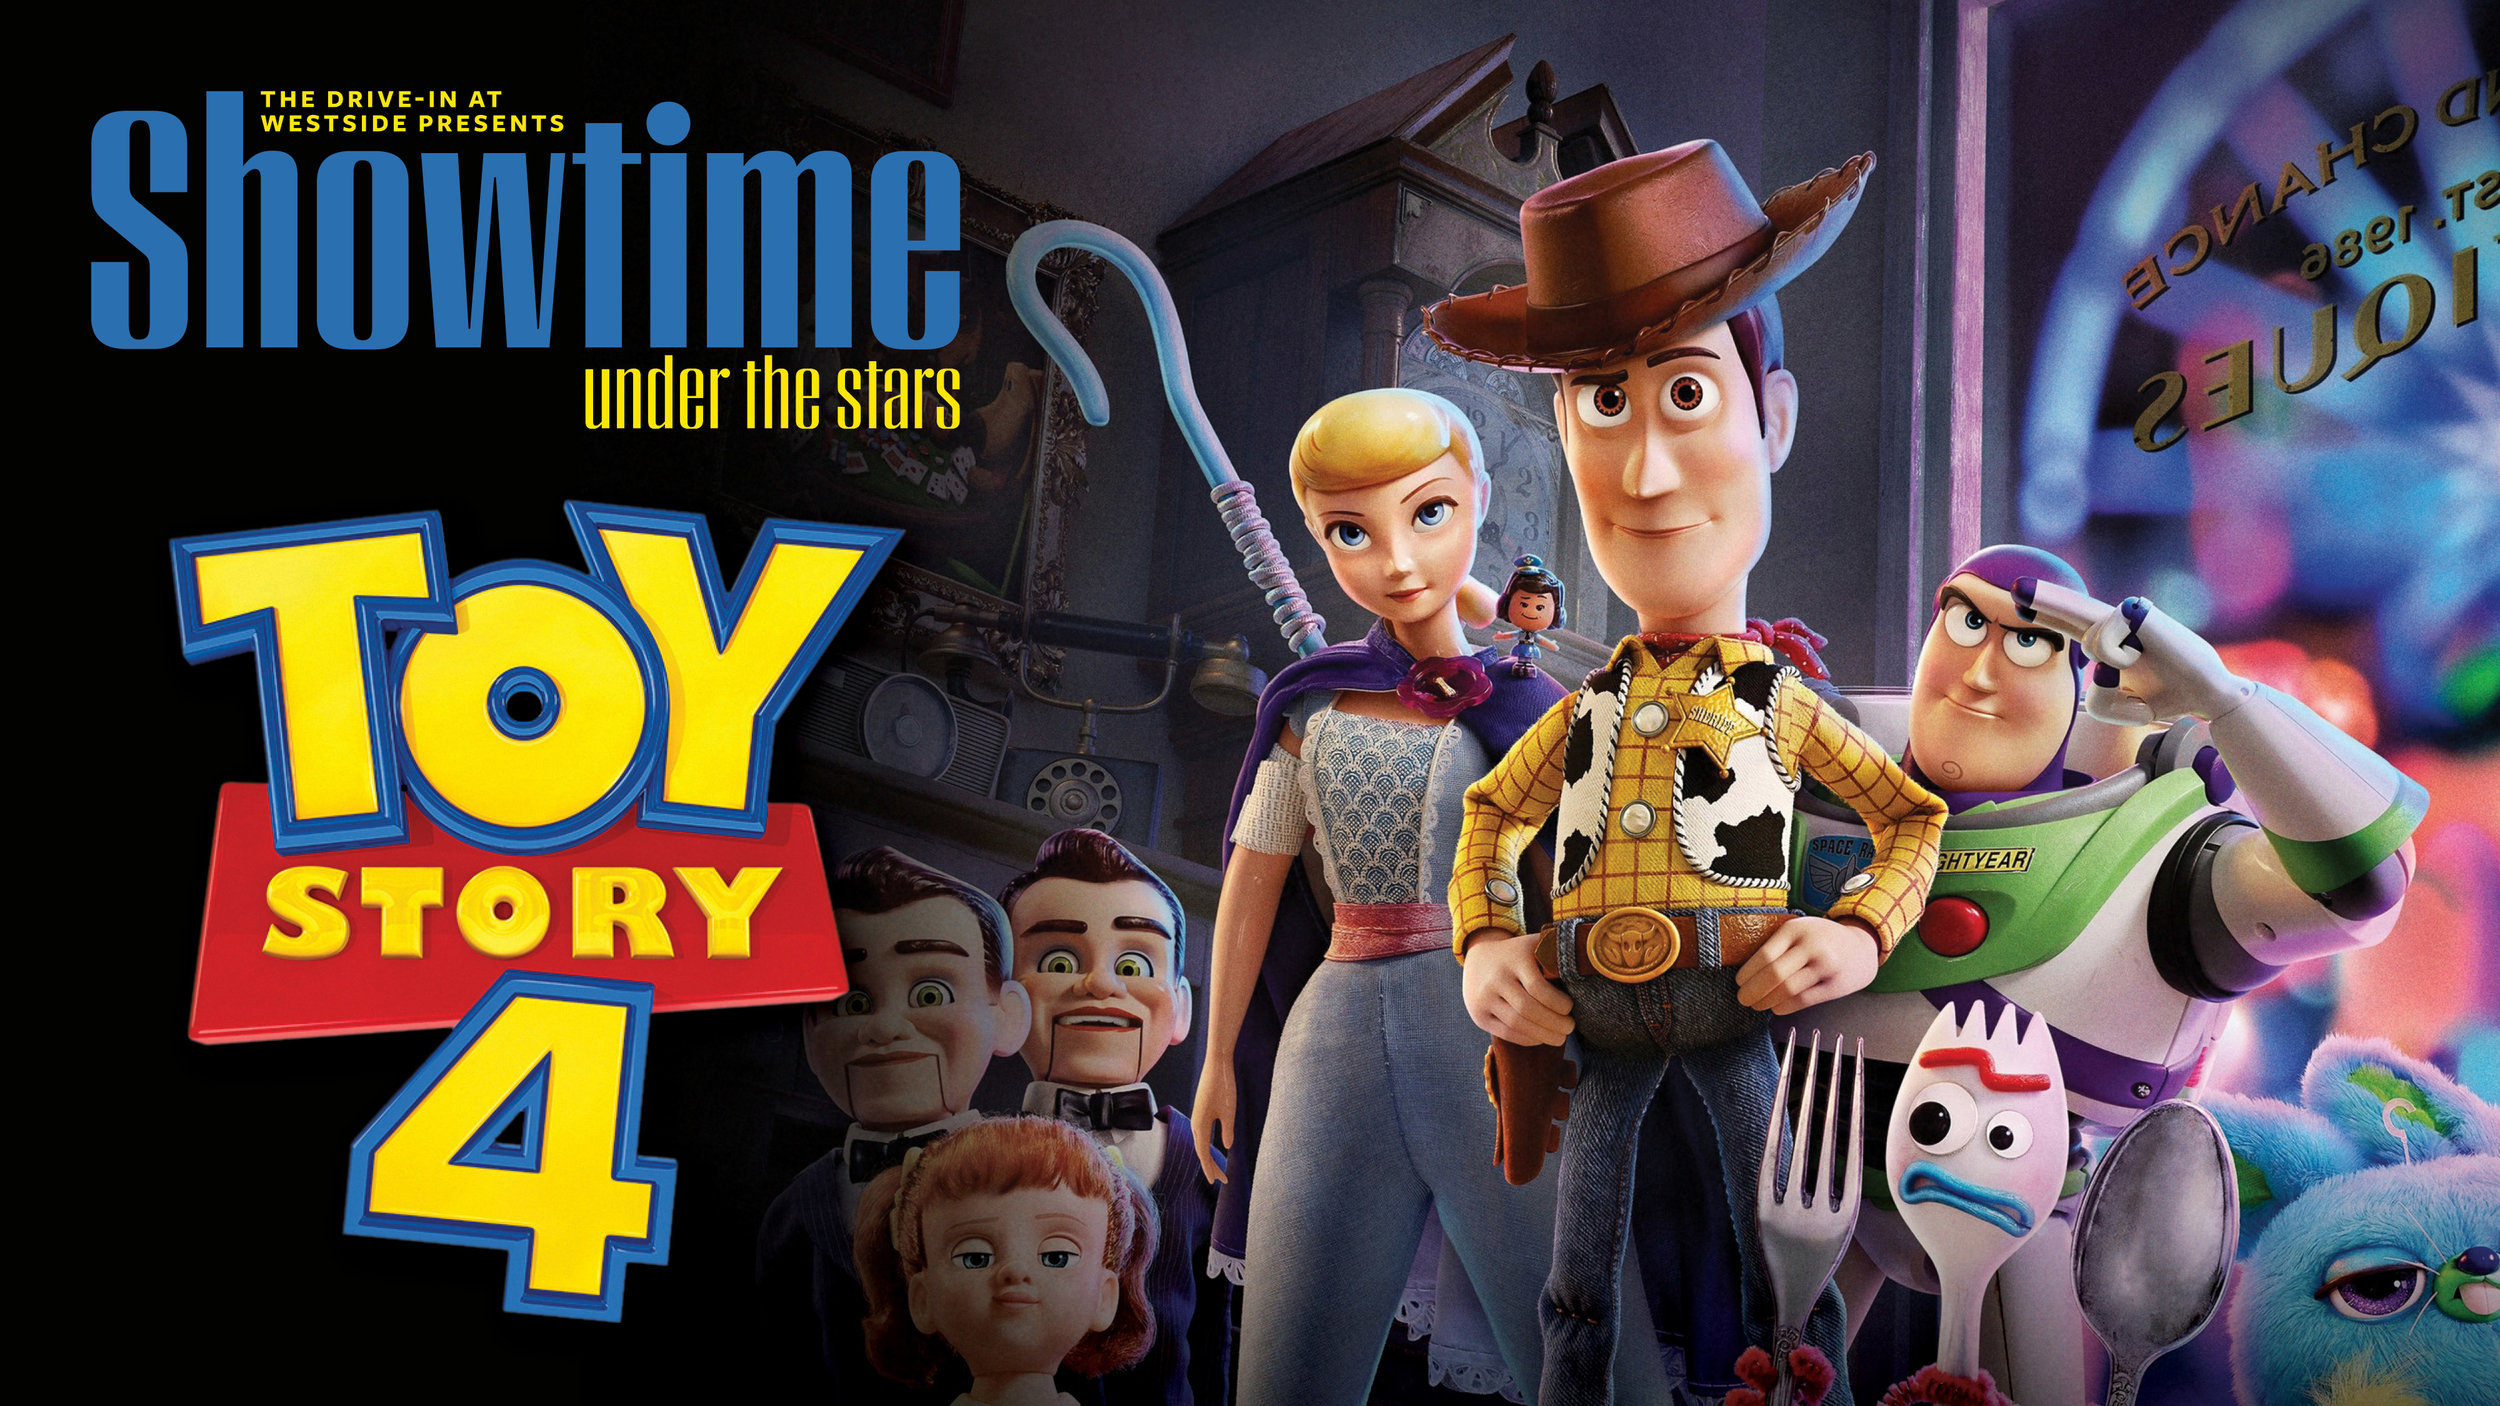 Drive-in Movie_Toy Story_Web Graphic_1920x1080_fa.jpg